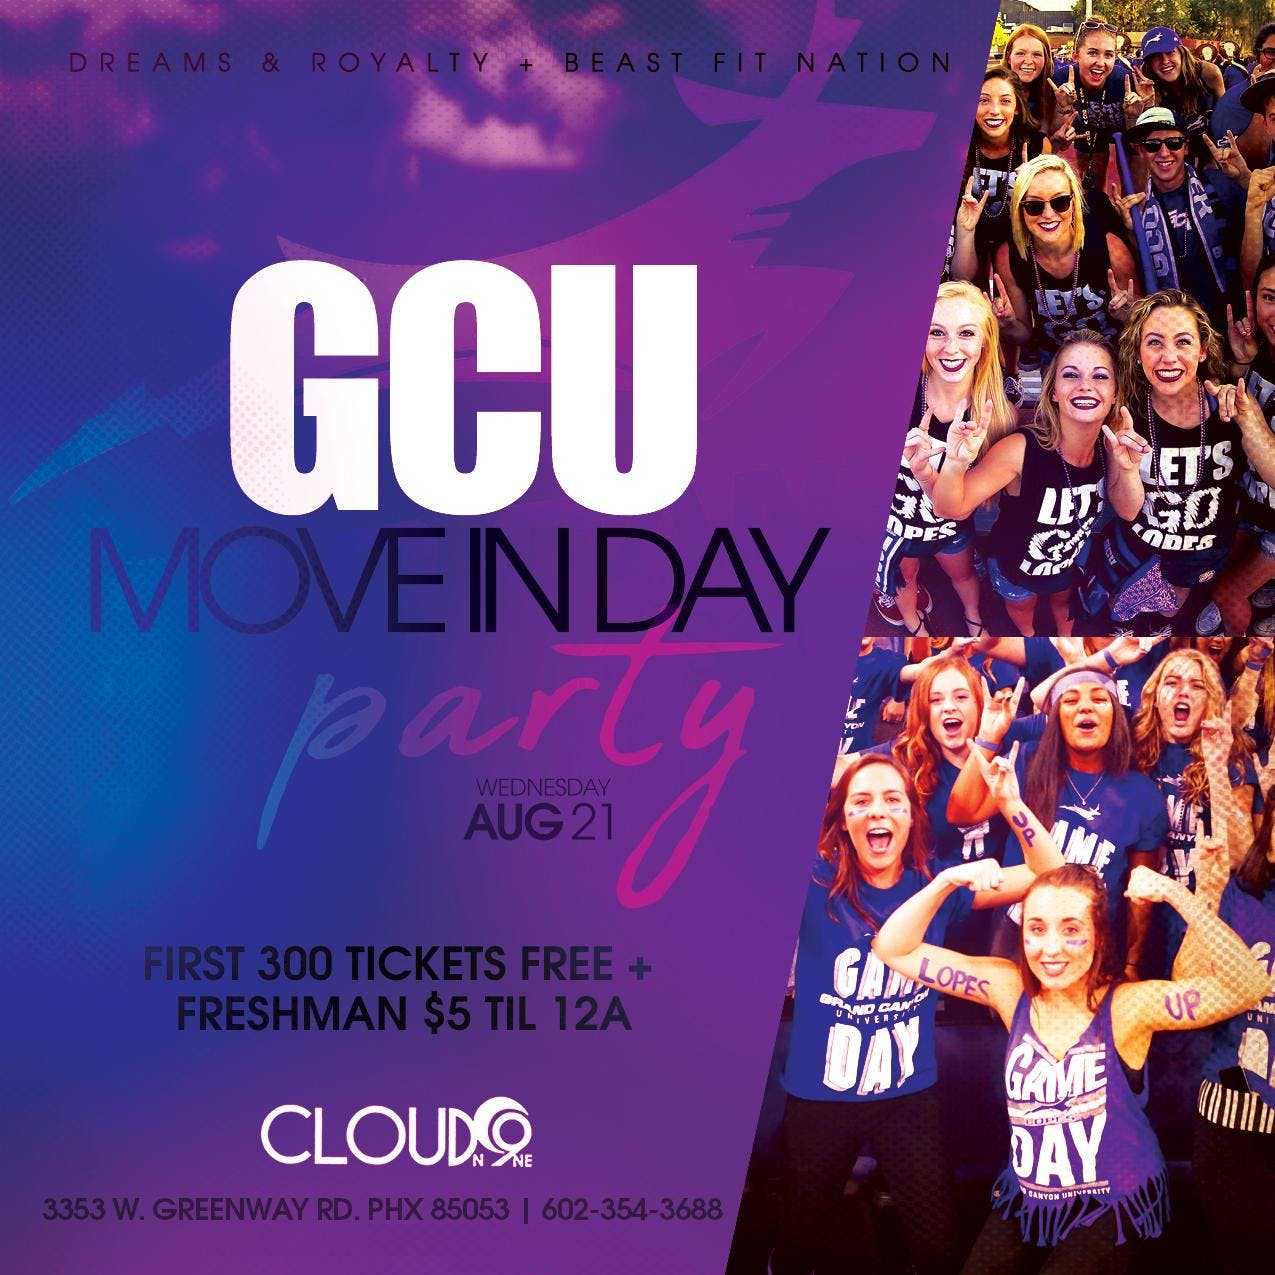 Welcome party for GCU